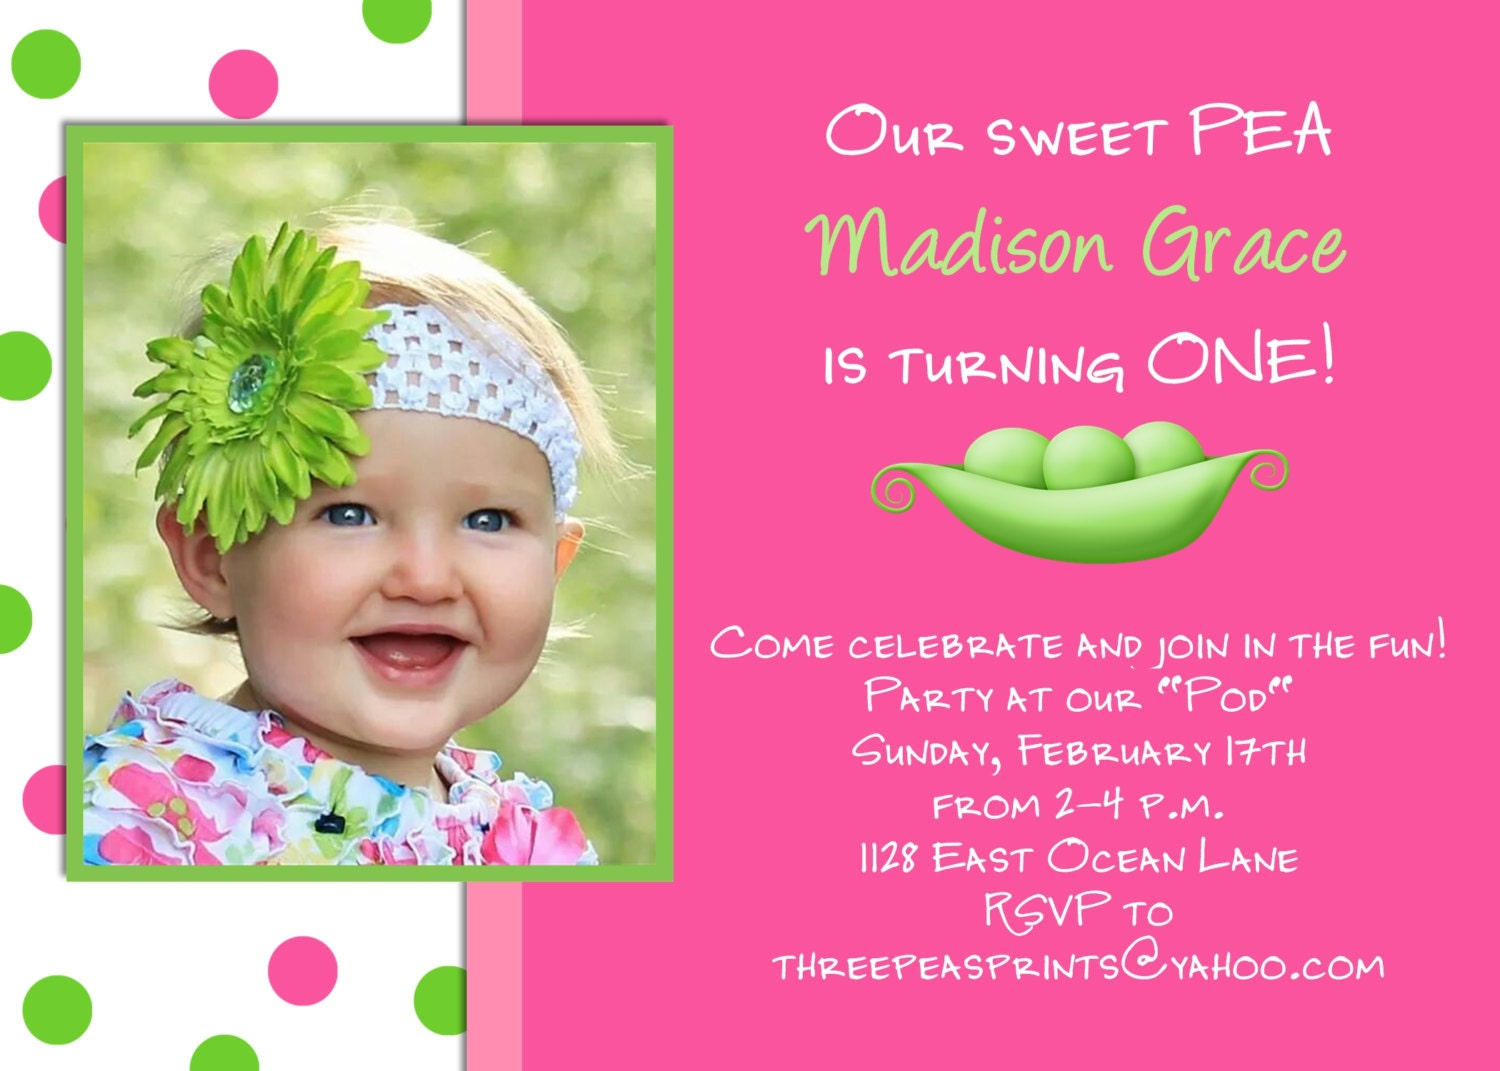 Sweet pea girl birthday invitation hot pink lime green photo sweet pea girl birthday invitation hot pink lime green photo card design printable custom invite filmwisefo Gallery